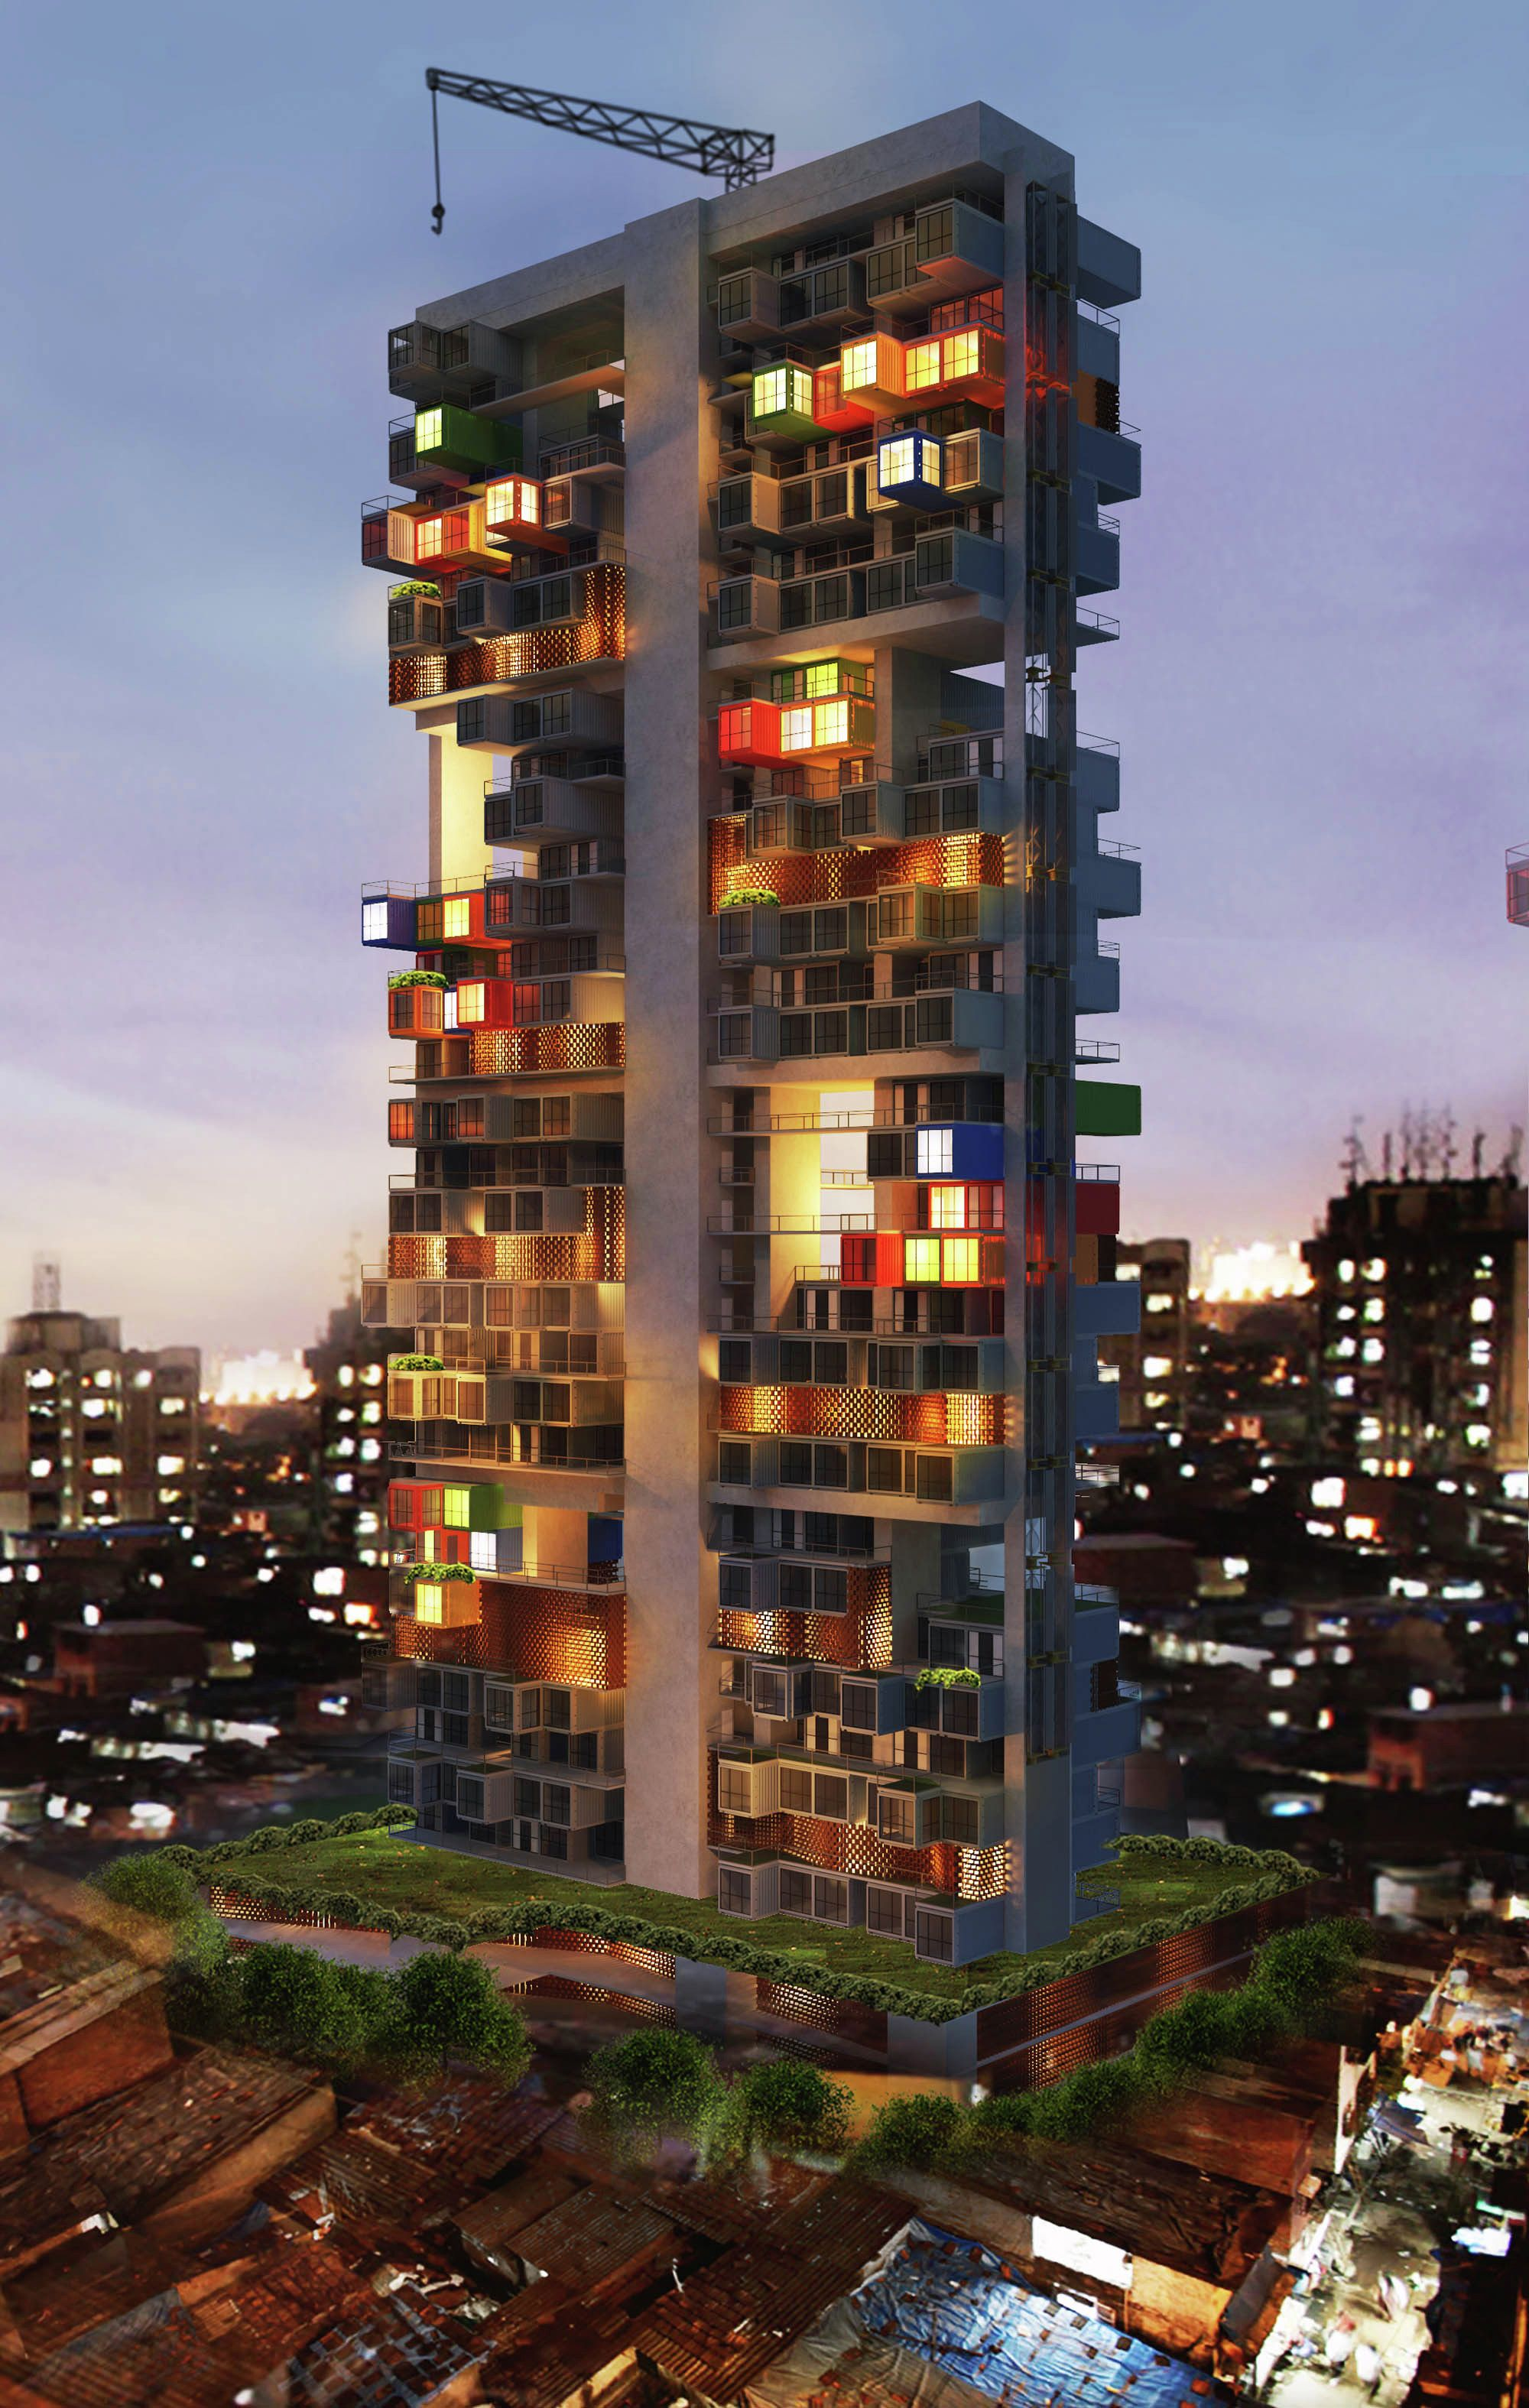 GA Designs Radical Shipping Container Skyser for Mumbai ... on linear home designs, outrageous home designs, dramatic home designs,